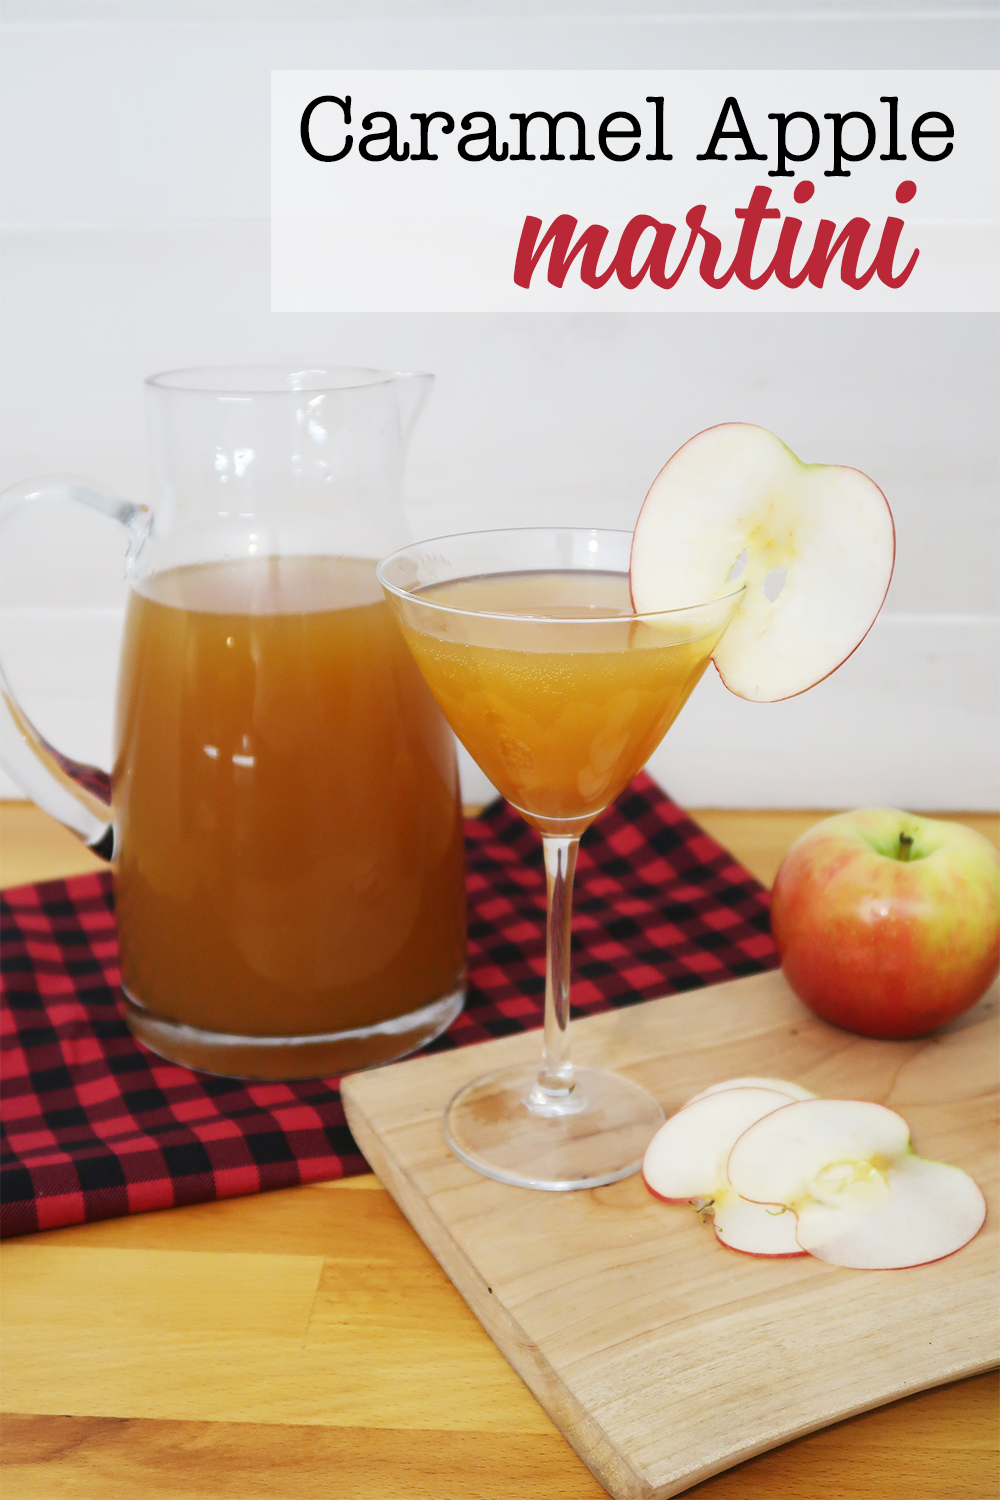 Caramel_apple_martini.jpg